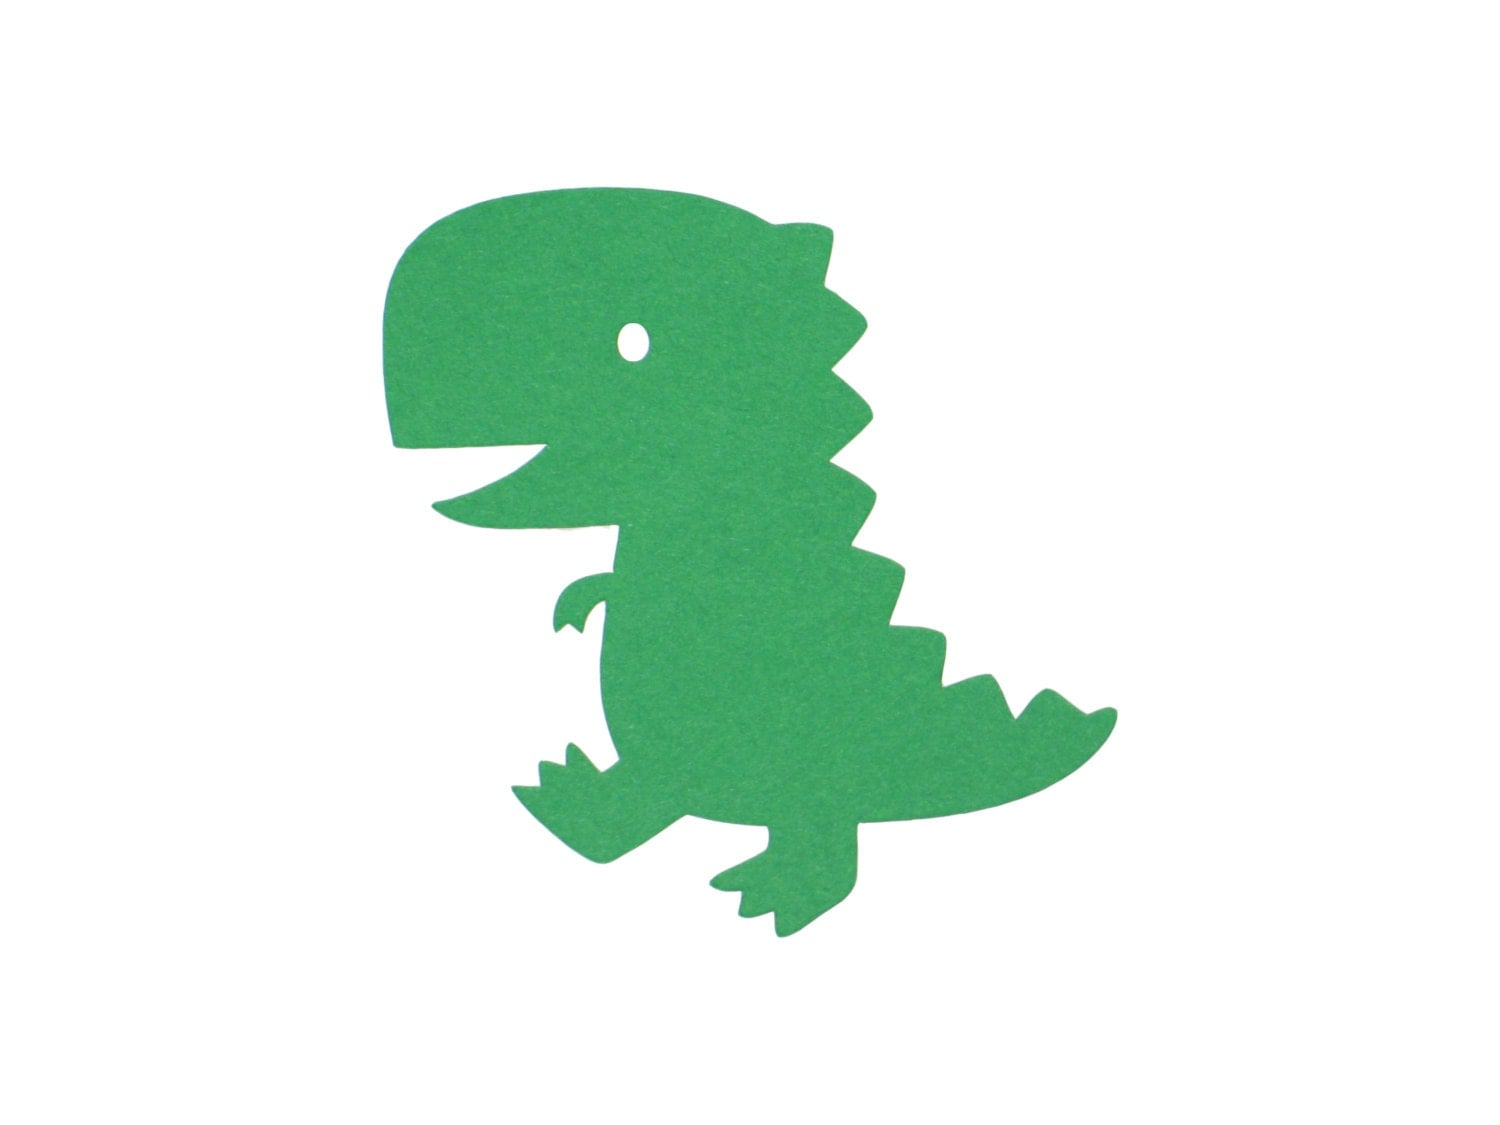 T Rex Dinosaur Cuts Jurassic Party Dinosaur Cut Out